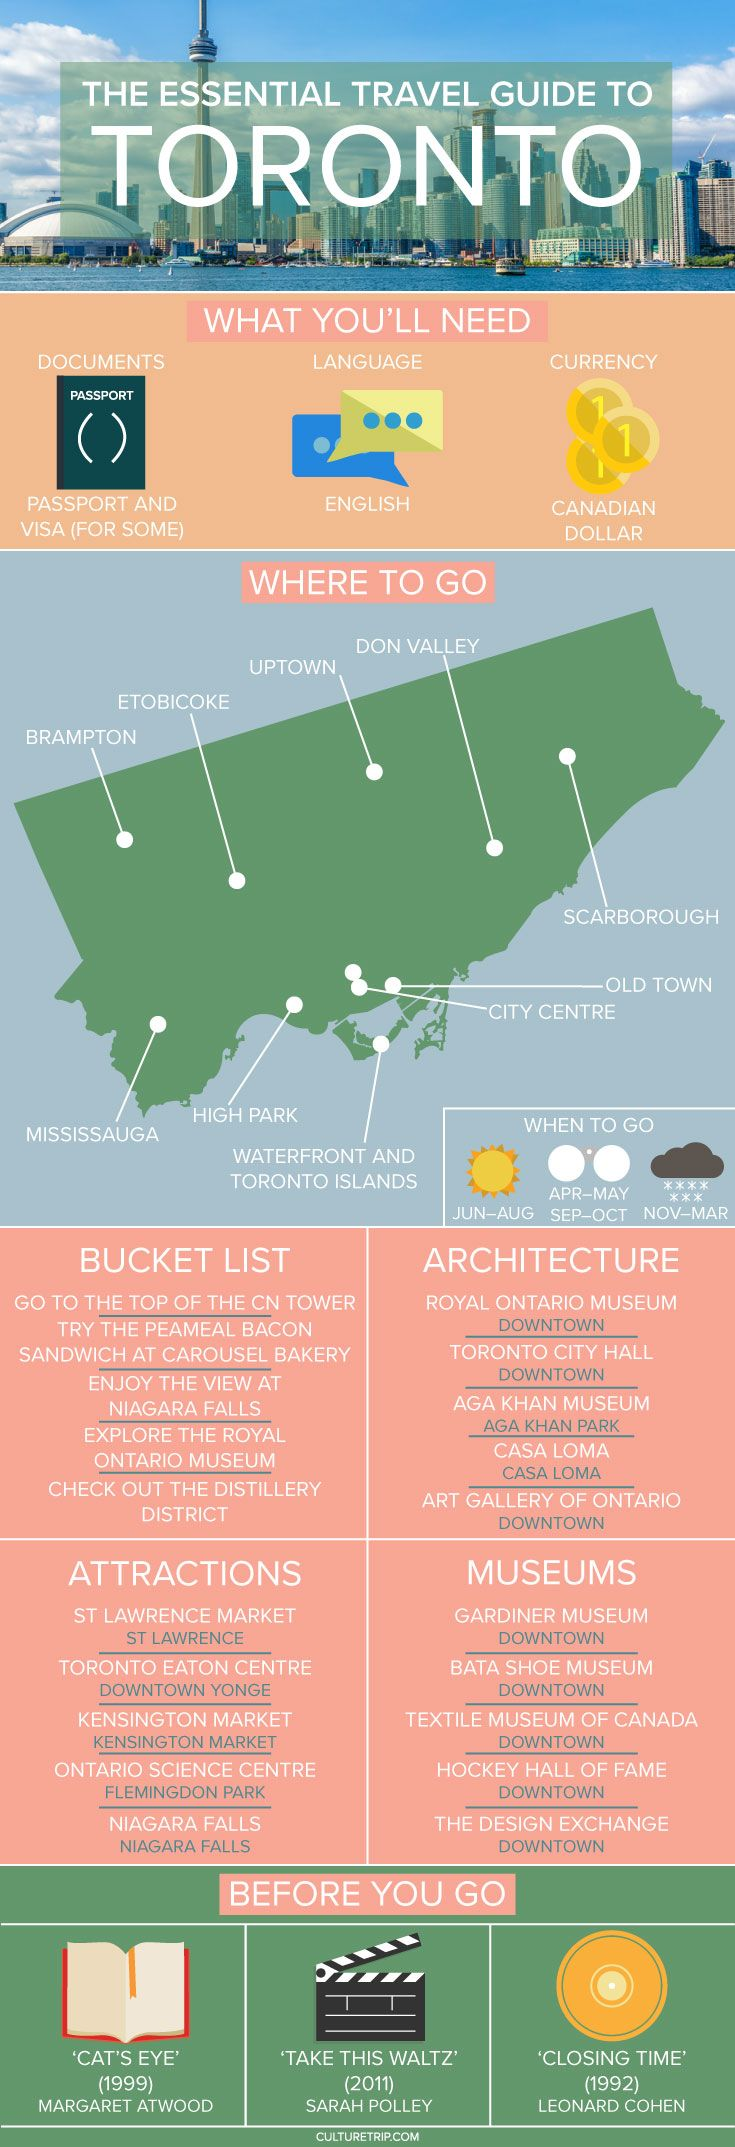 The Essential Travel Guide to Toronto Infographic